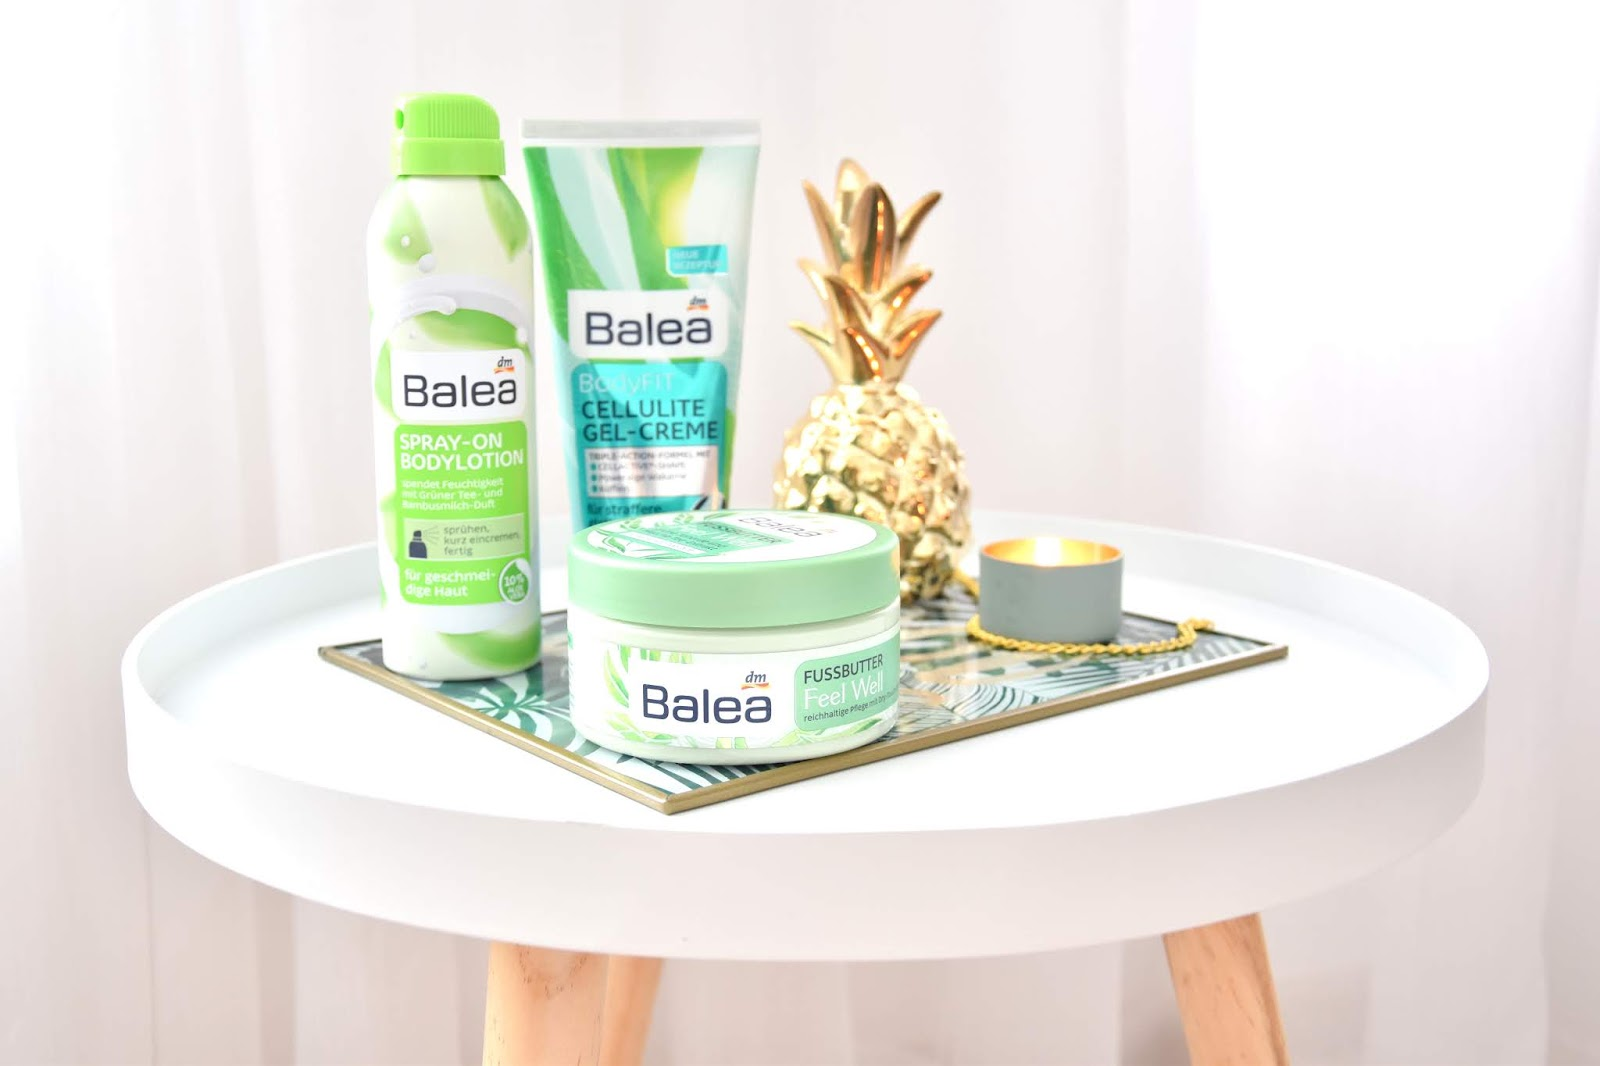 Balea Feel Well maslo na nohy Balea Spray-on bodylotion Balea BodyFit CELLULITE GEL CREME